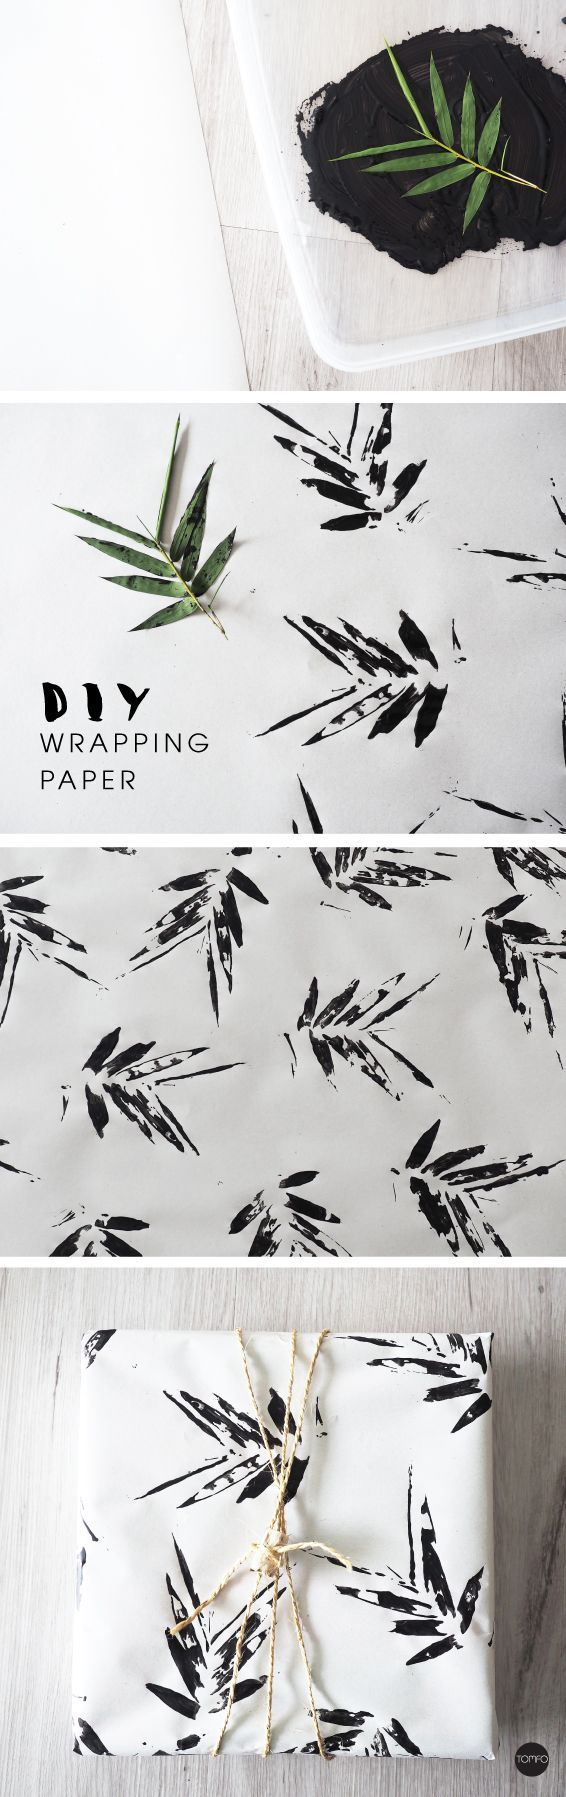 DIY Wrapping paper with green plants